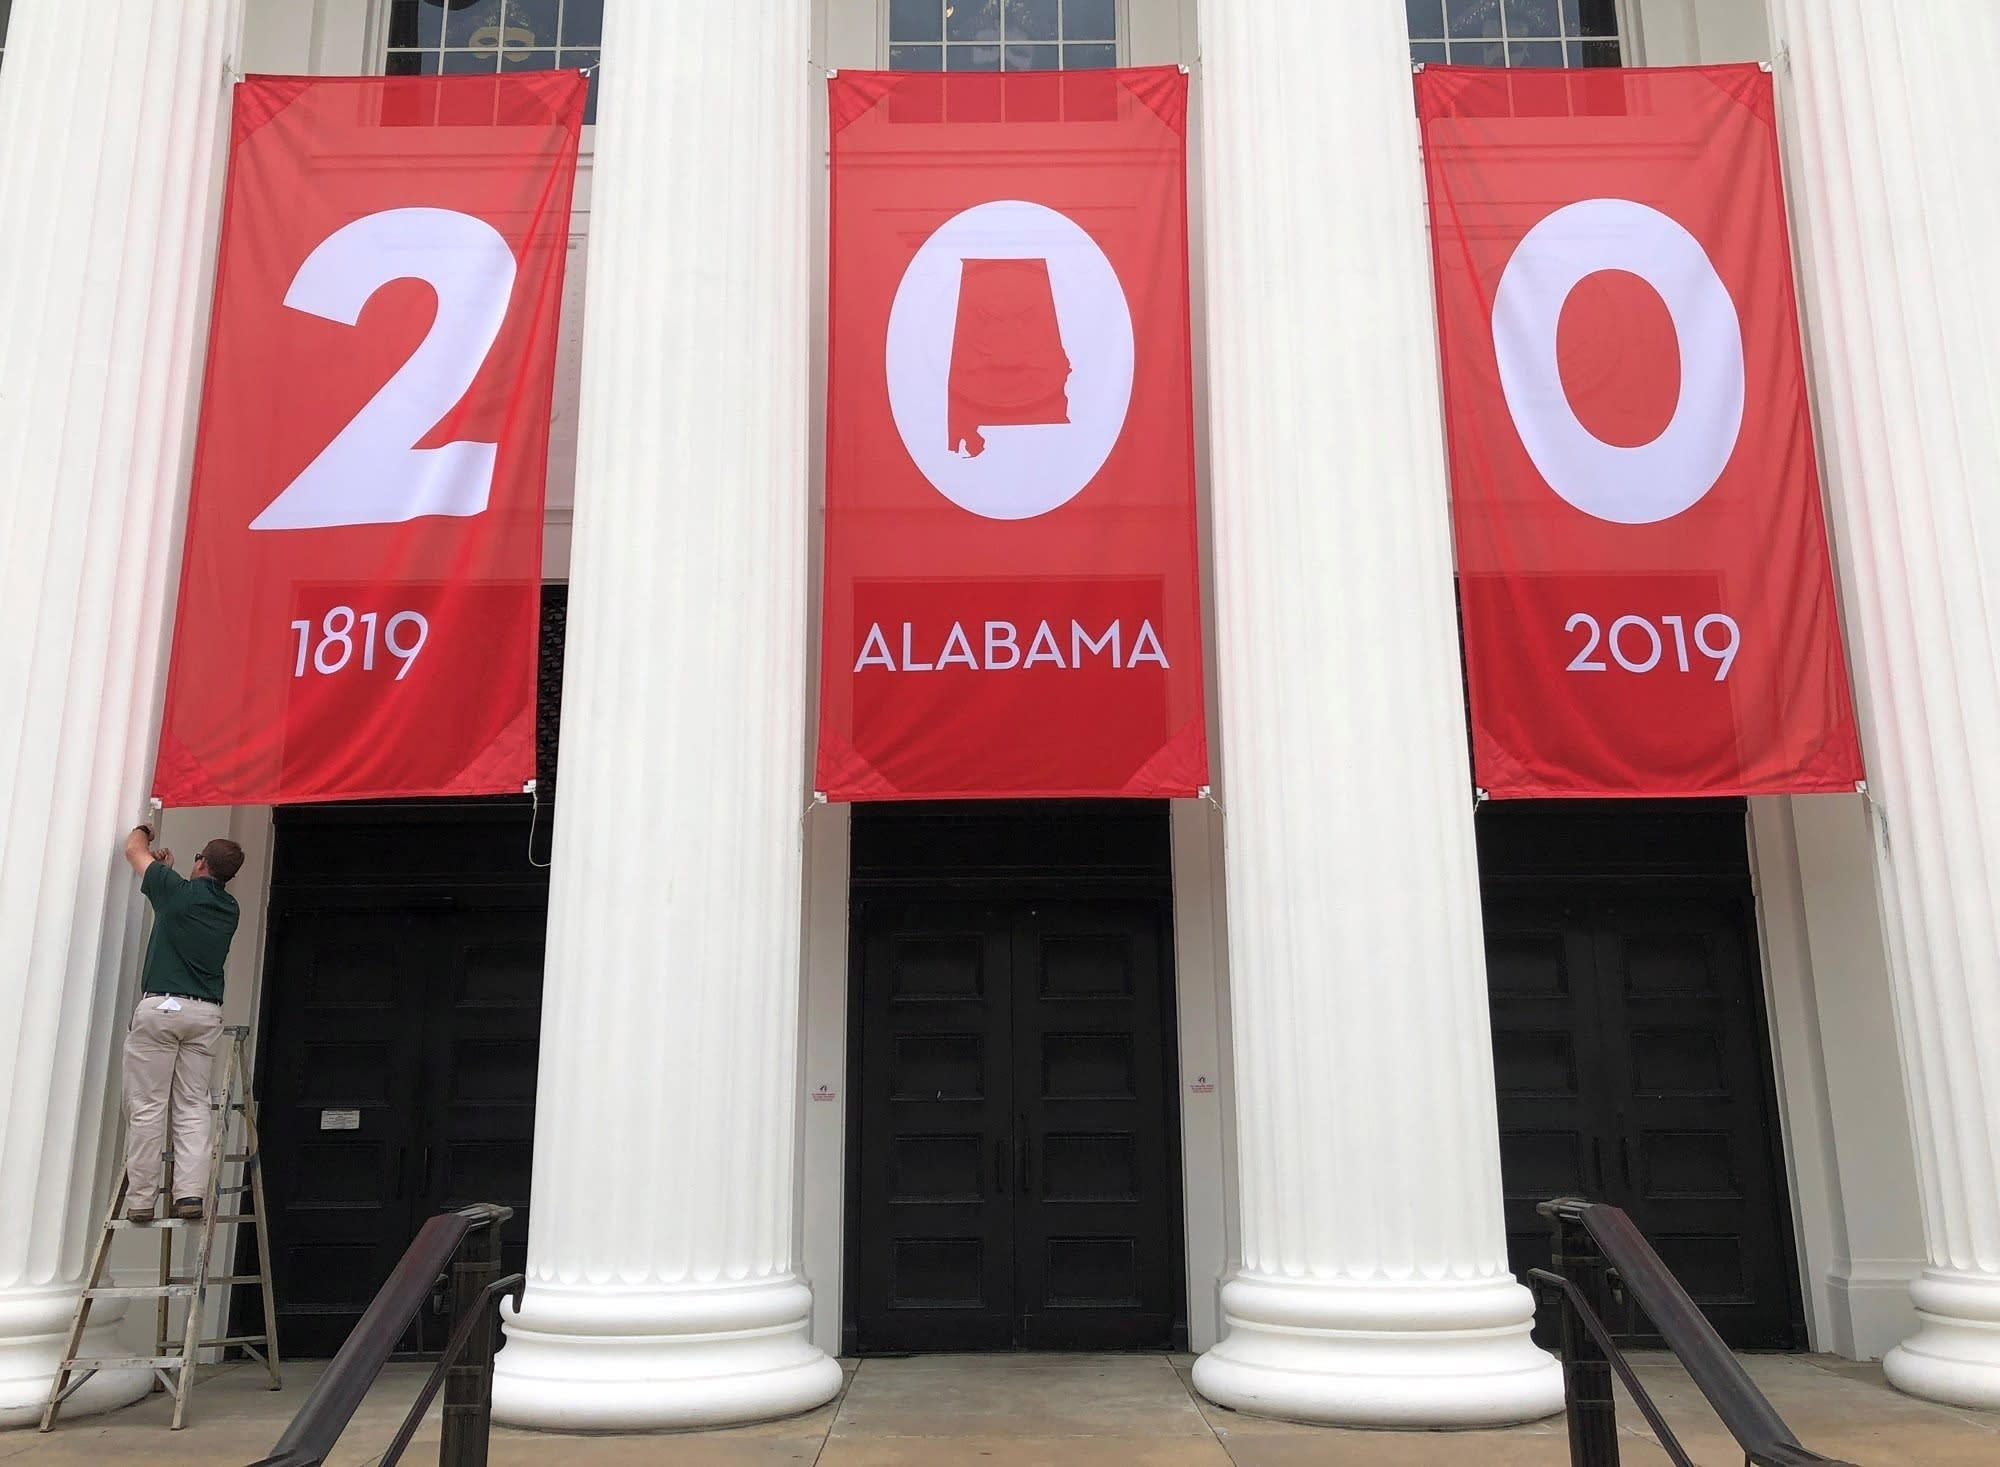 """FILE - In this Feb. 28, 2019 file photo a worker adjusts a banner celebrating Alabama's bicentennial outside the Department of Archives and History in Montgomery, Ala. Leaders in Alabama are confronting the legacy of what might be the grandest Confederate memorial of all: the state's Department of Archives and History. During the current national reckoning over race, its current leaders acknowledged the department once played a role in systemic racism by promoting """"lost cause"""" narrative of Civil War history that was favored by some whites and all but excluding Blacks. (AP Photo/Jay Reeves, File)"""